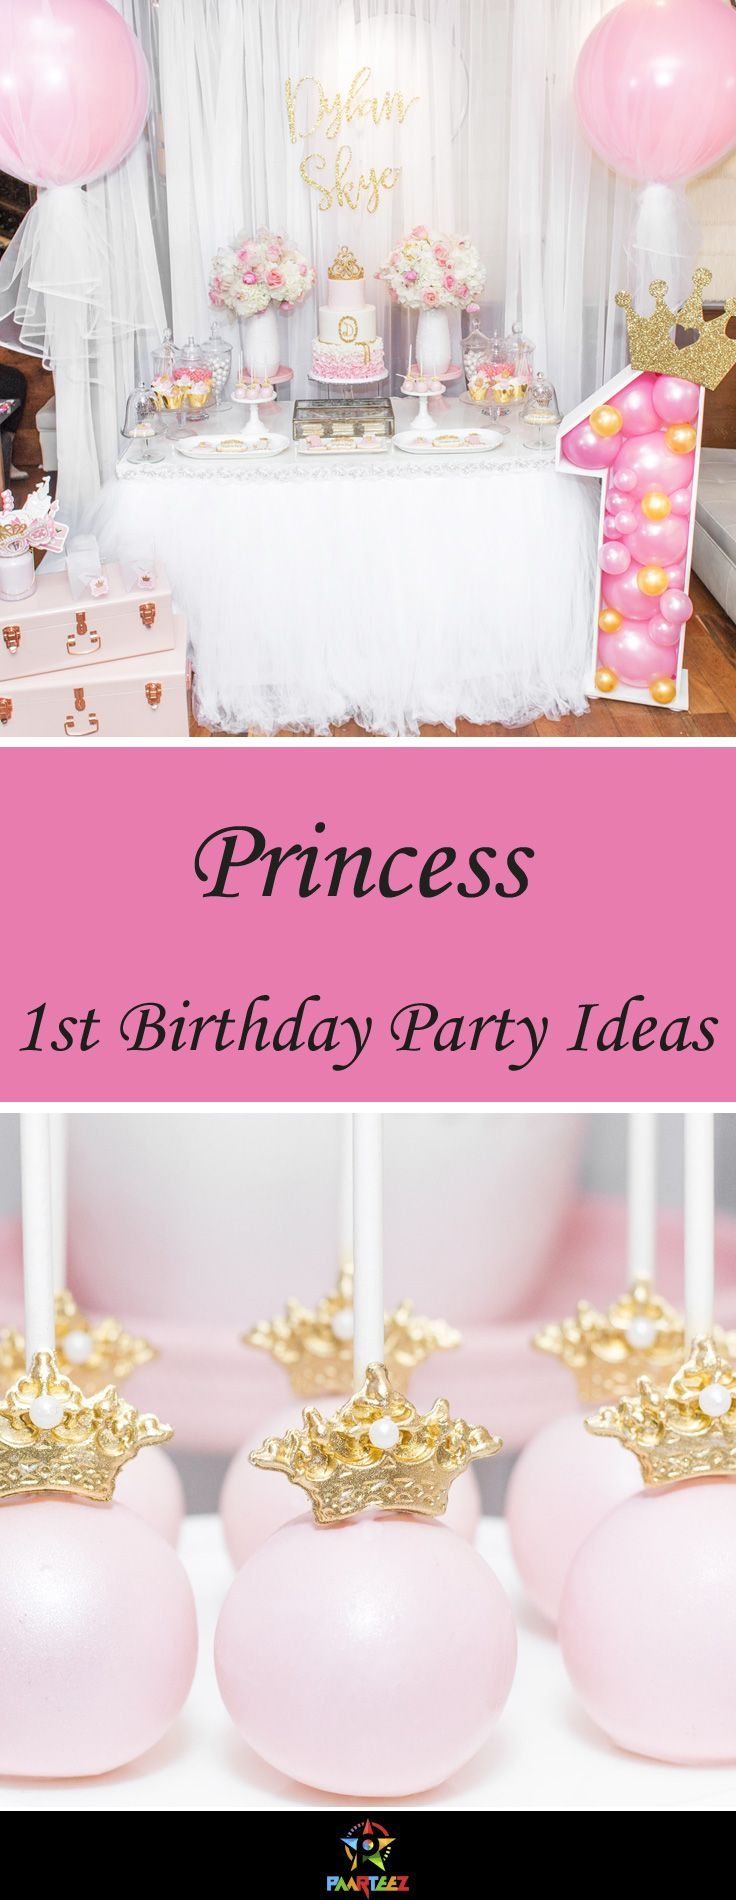 226 best PRINCESS BIRTHDAY images on Pinterest | Princess party ...